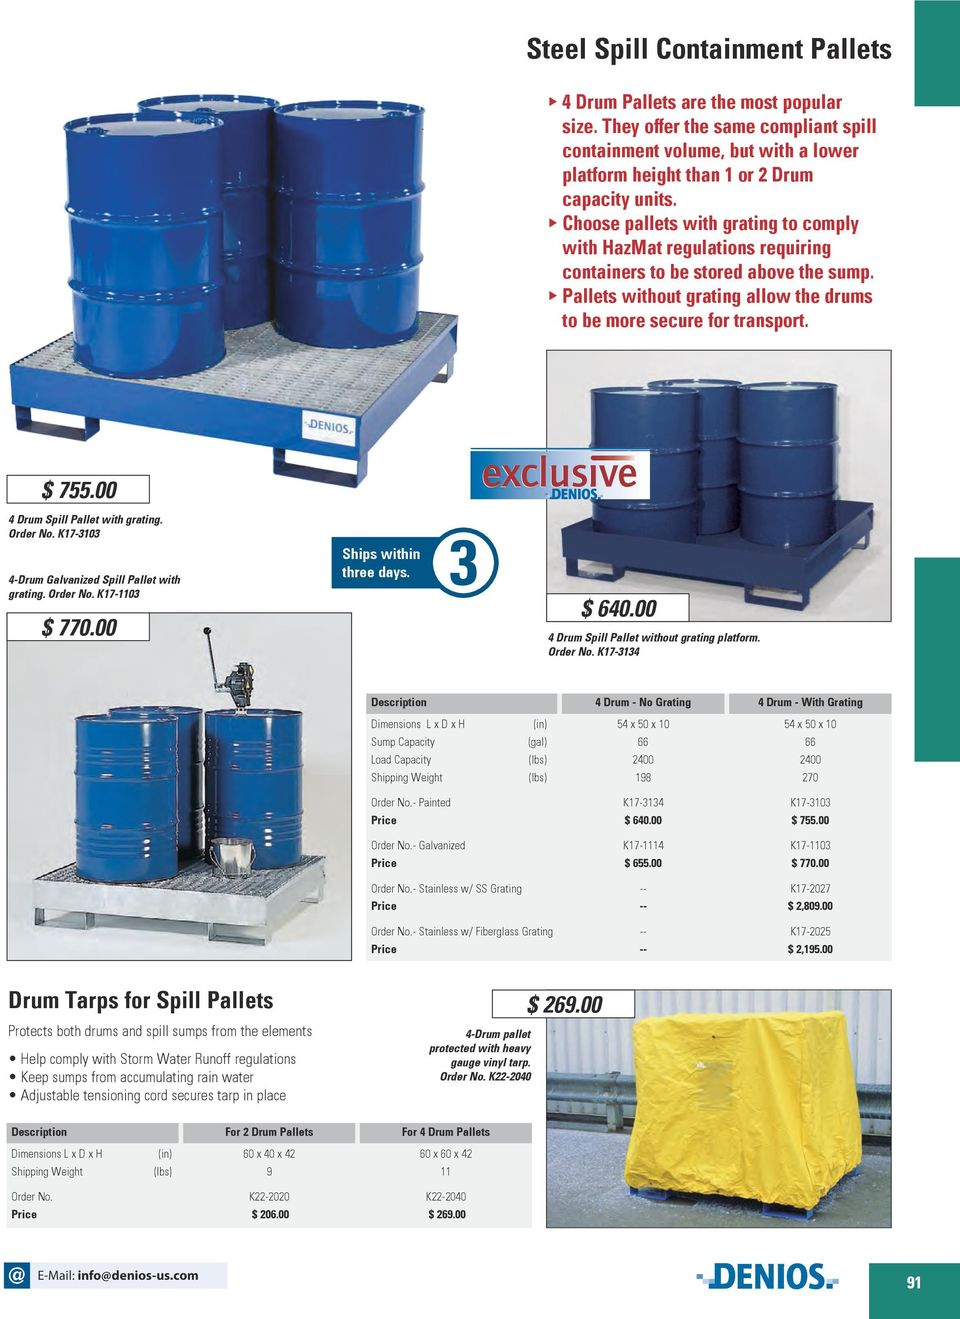 00 4 Drum Spill Pallet with grating. K17-3103 4-Drum Galvanized Spill Pallet with grating. K17-1103 $ 770.00 Ships within three days. $ 640.00 4 Drum Spill Pallet without grating platform.